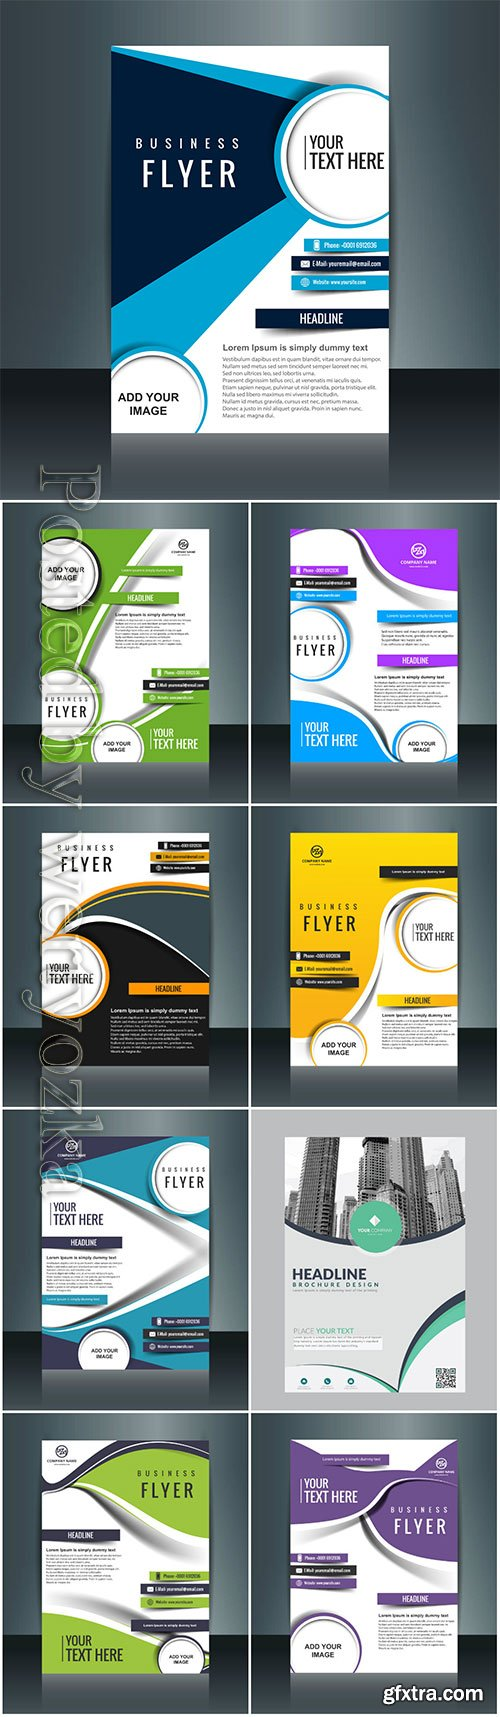 Business vector template for brochure, annual report, magazine # 6